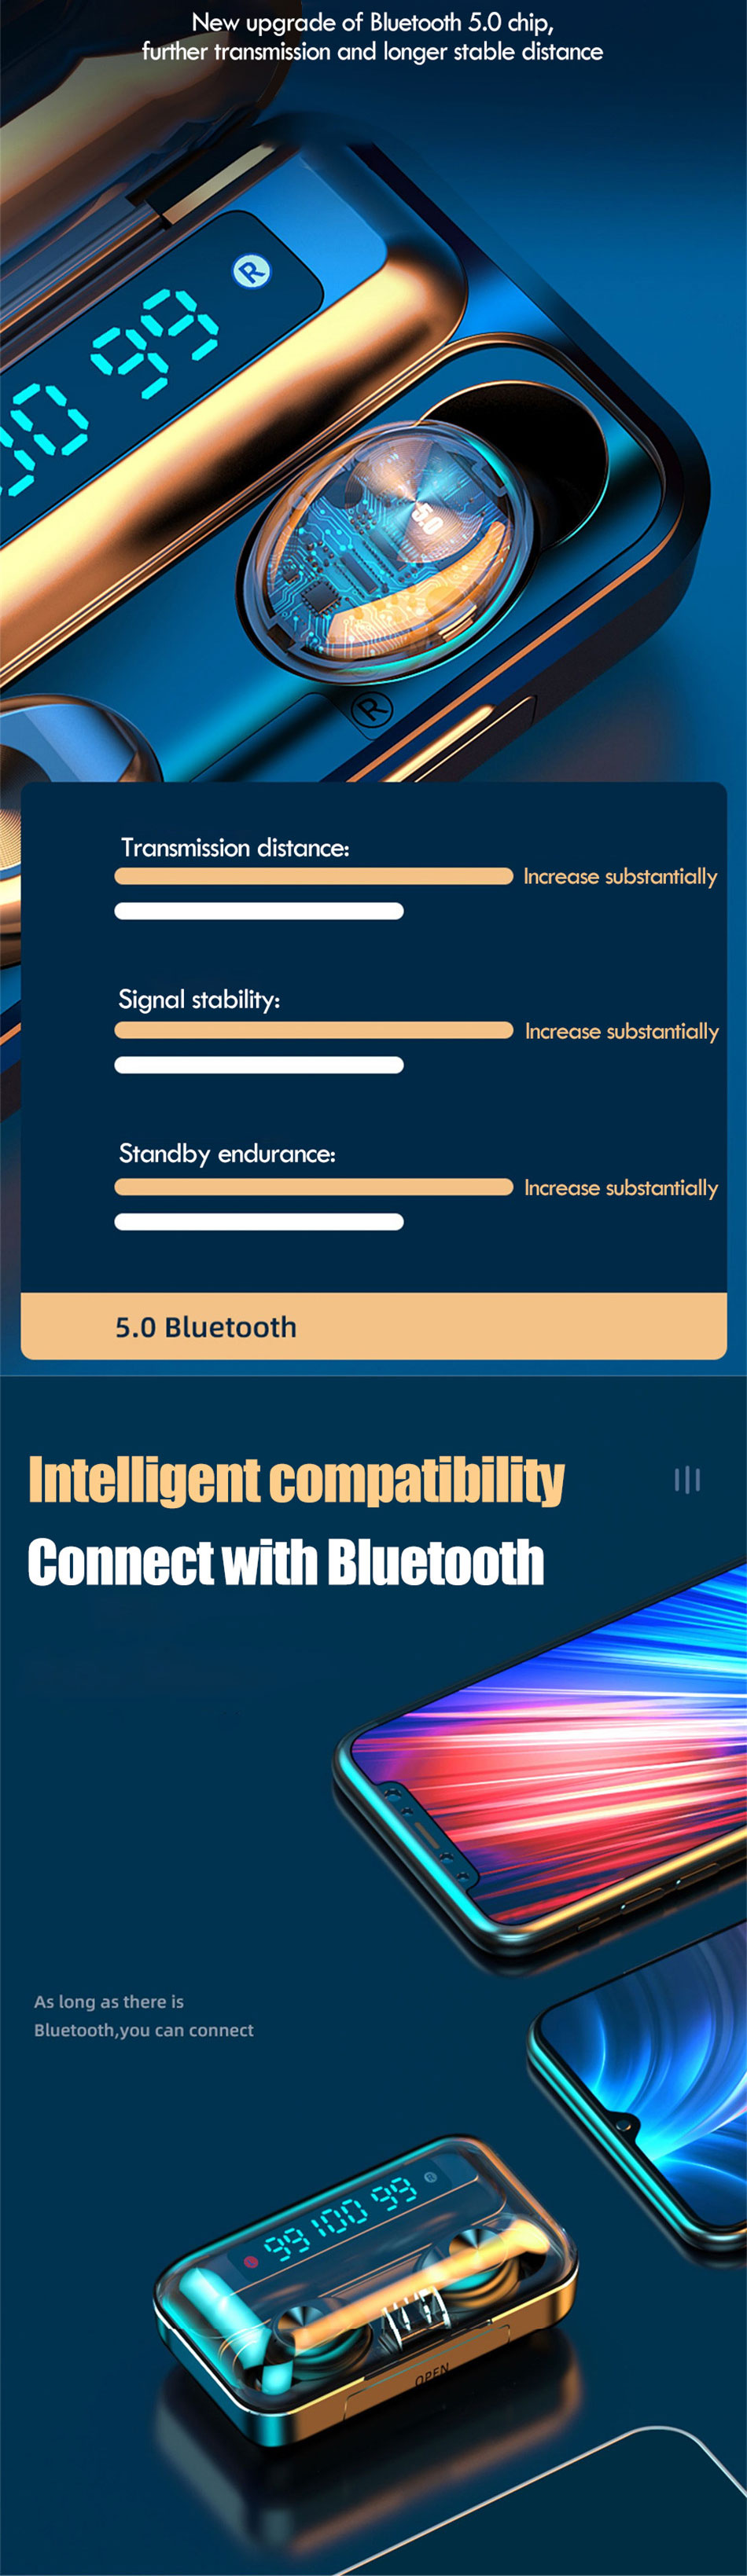 Wireless Headphones TWS Bluetooth 5.0 Earphones 2200mAh Charging Box 9D HiFi Earbuds Sport Waterproof Headsets With Microphone